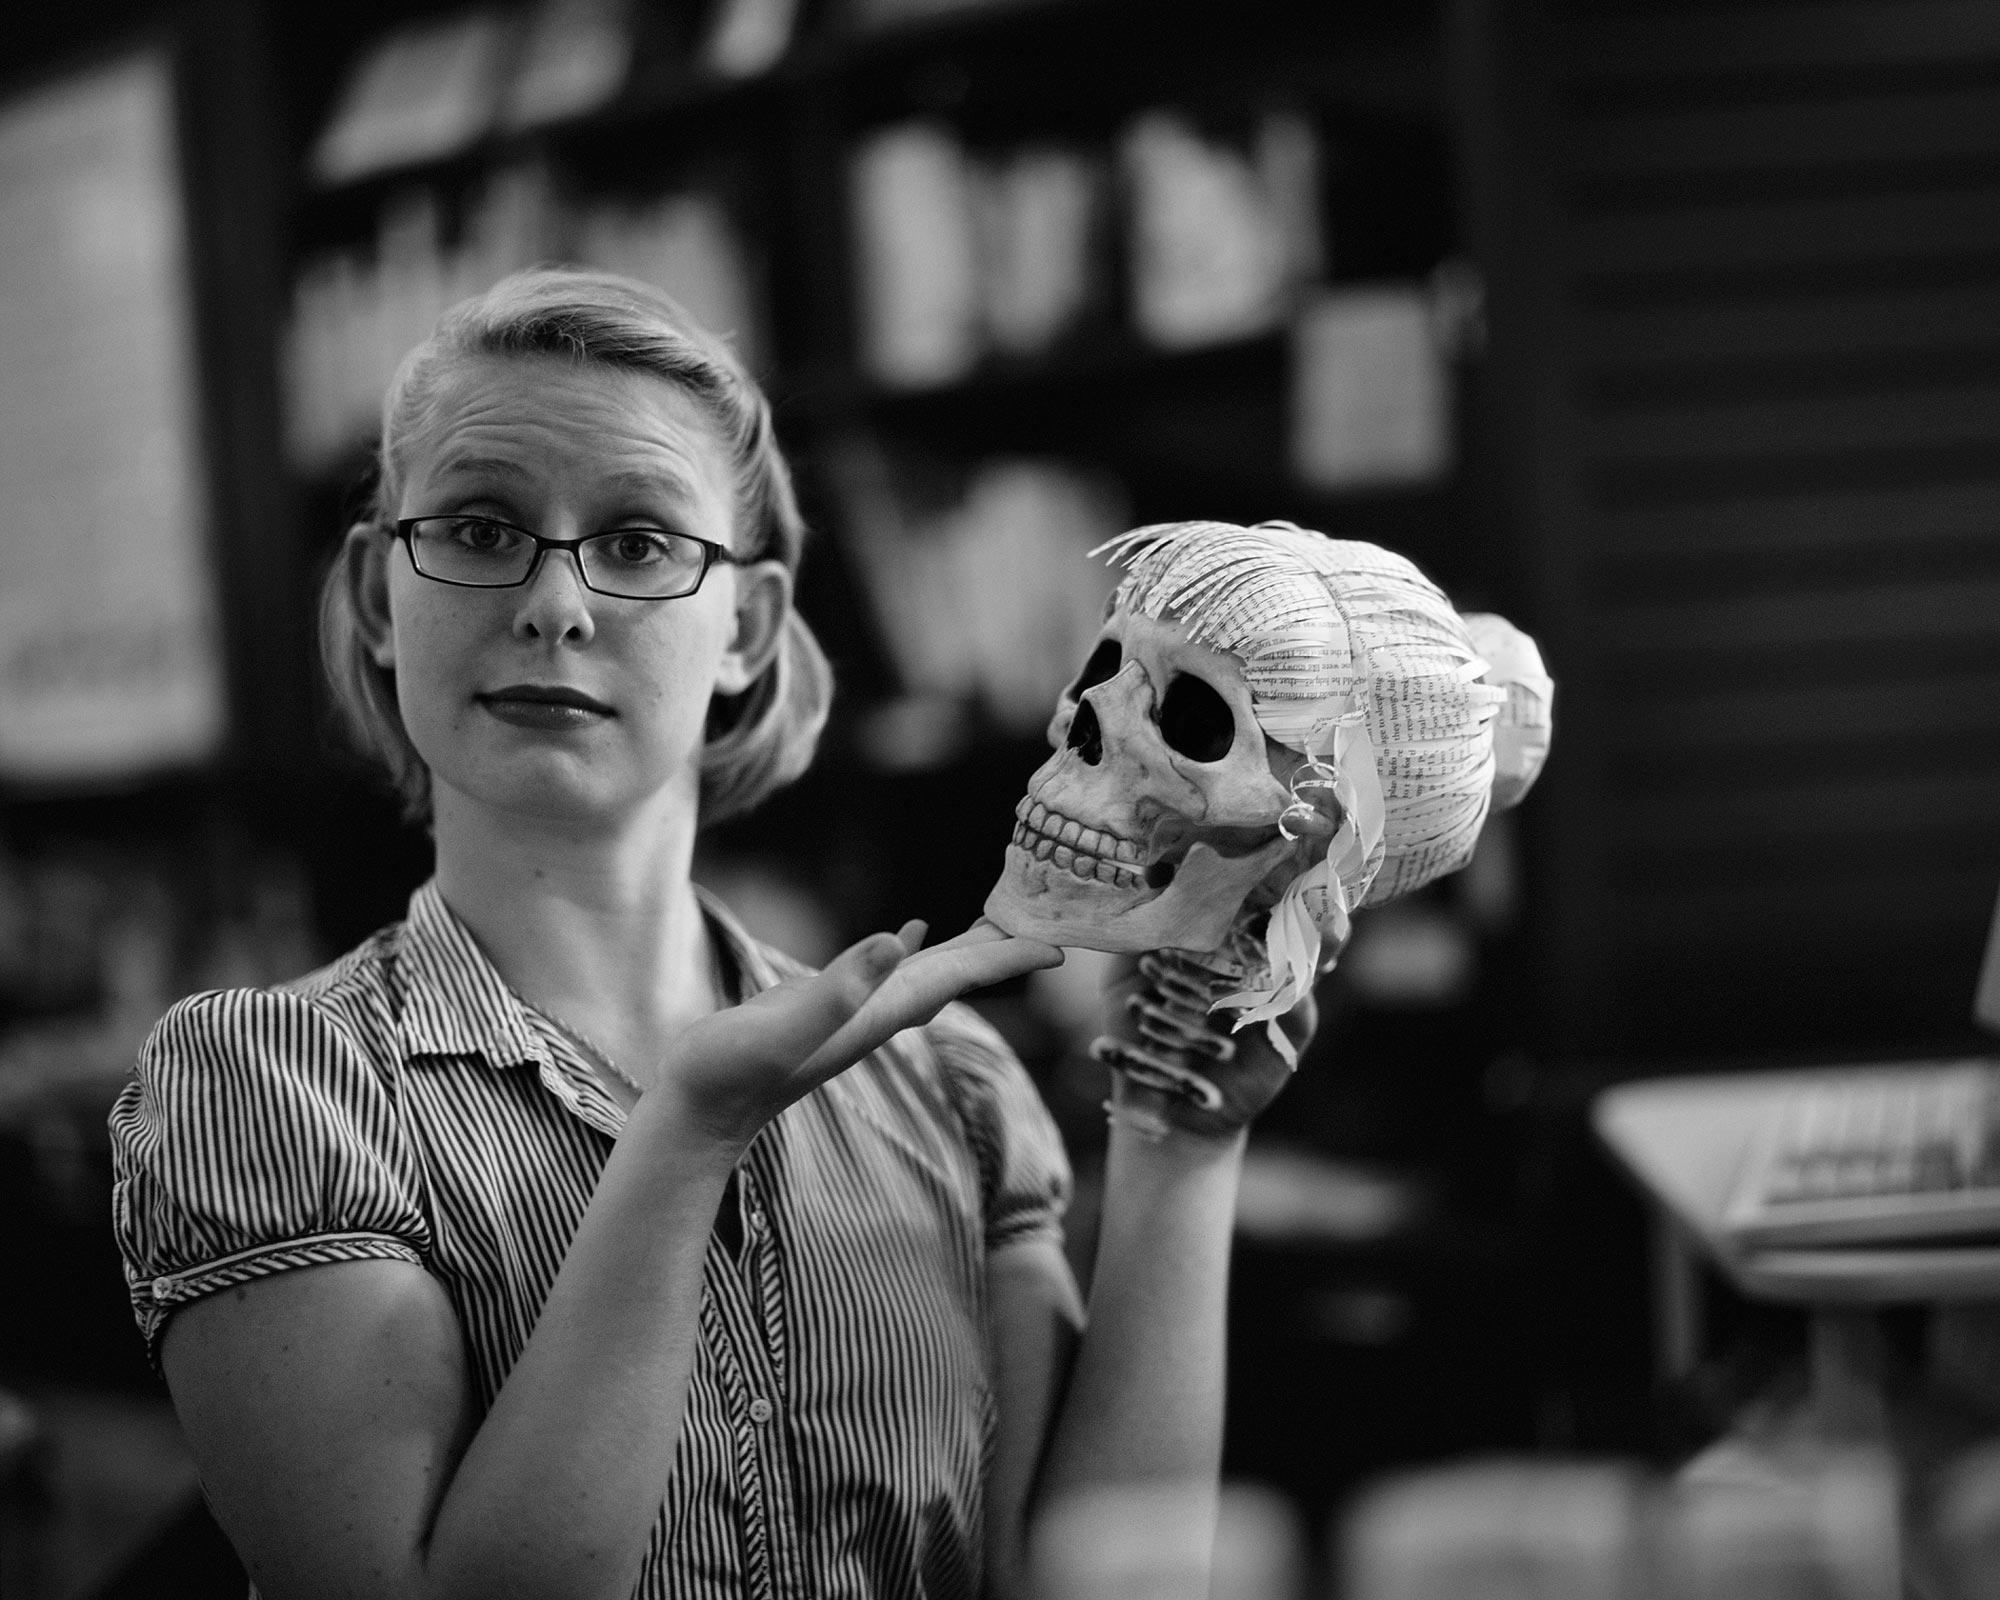 Kate and Skull, Annie Bloom